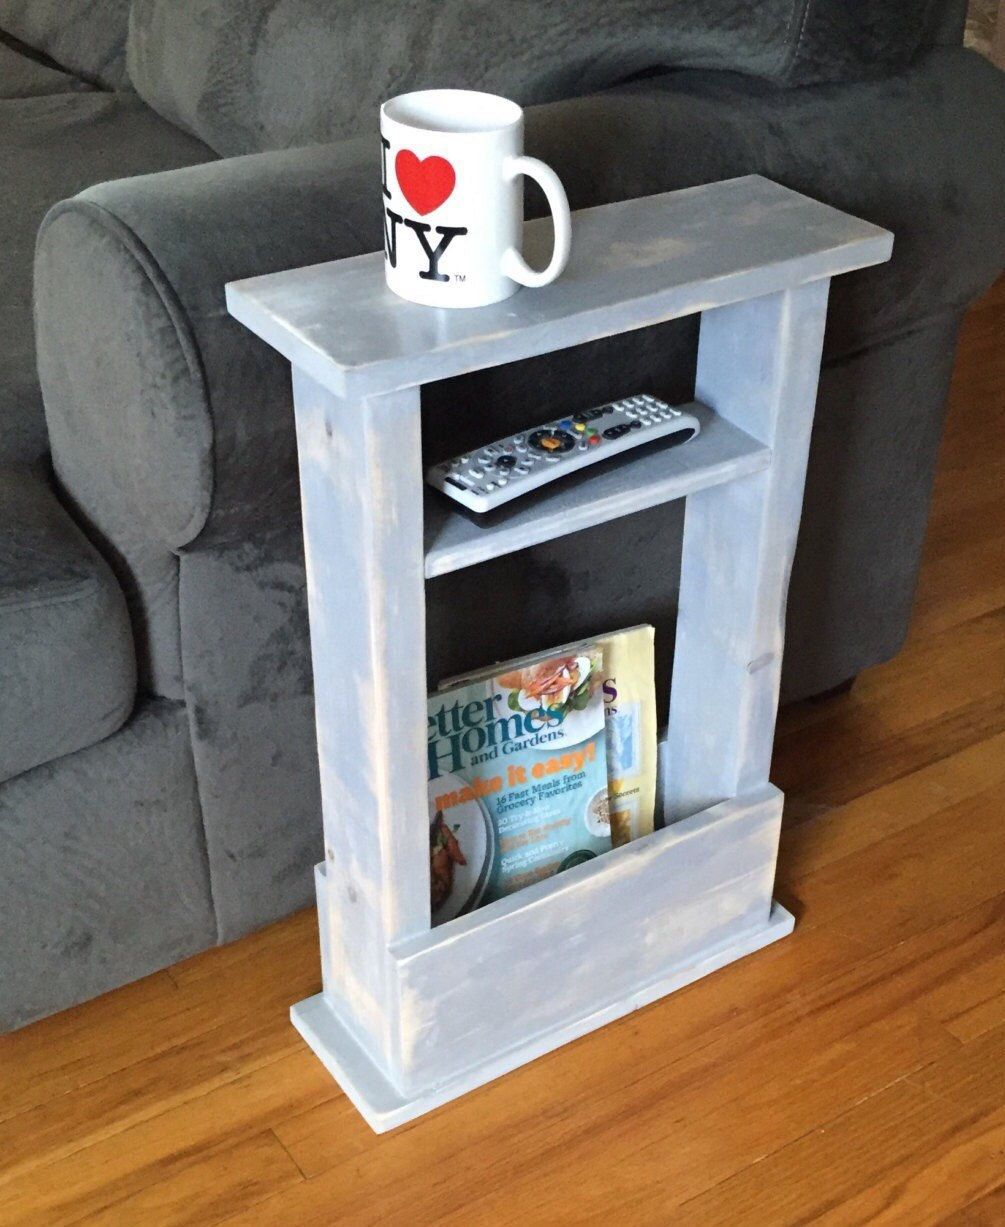 Settee End Table Skinny Side Table Mini Side Table Apartment Decor Small Space